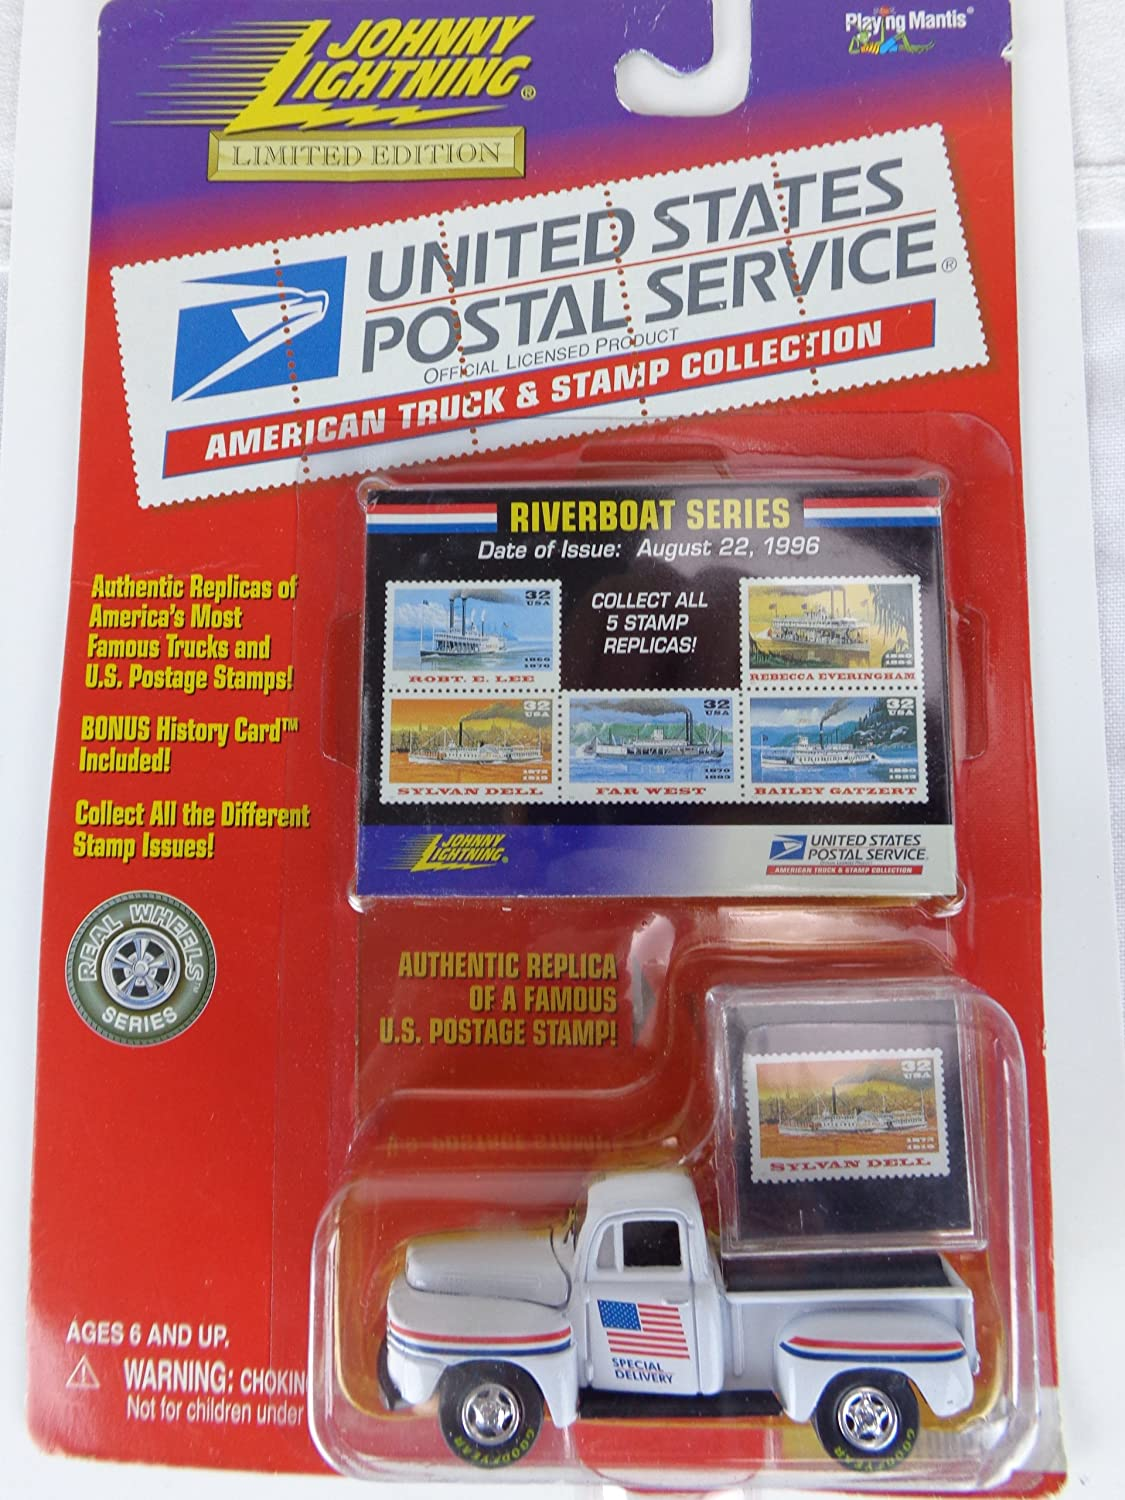 5e3e49bfb5 Amazon.com  Johnny Lightning United States Postal Service American Truck    Stamp Collection. Riverboat Series 1950 Ford F-1  Toys   Games